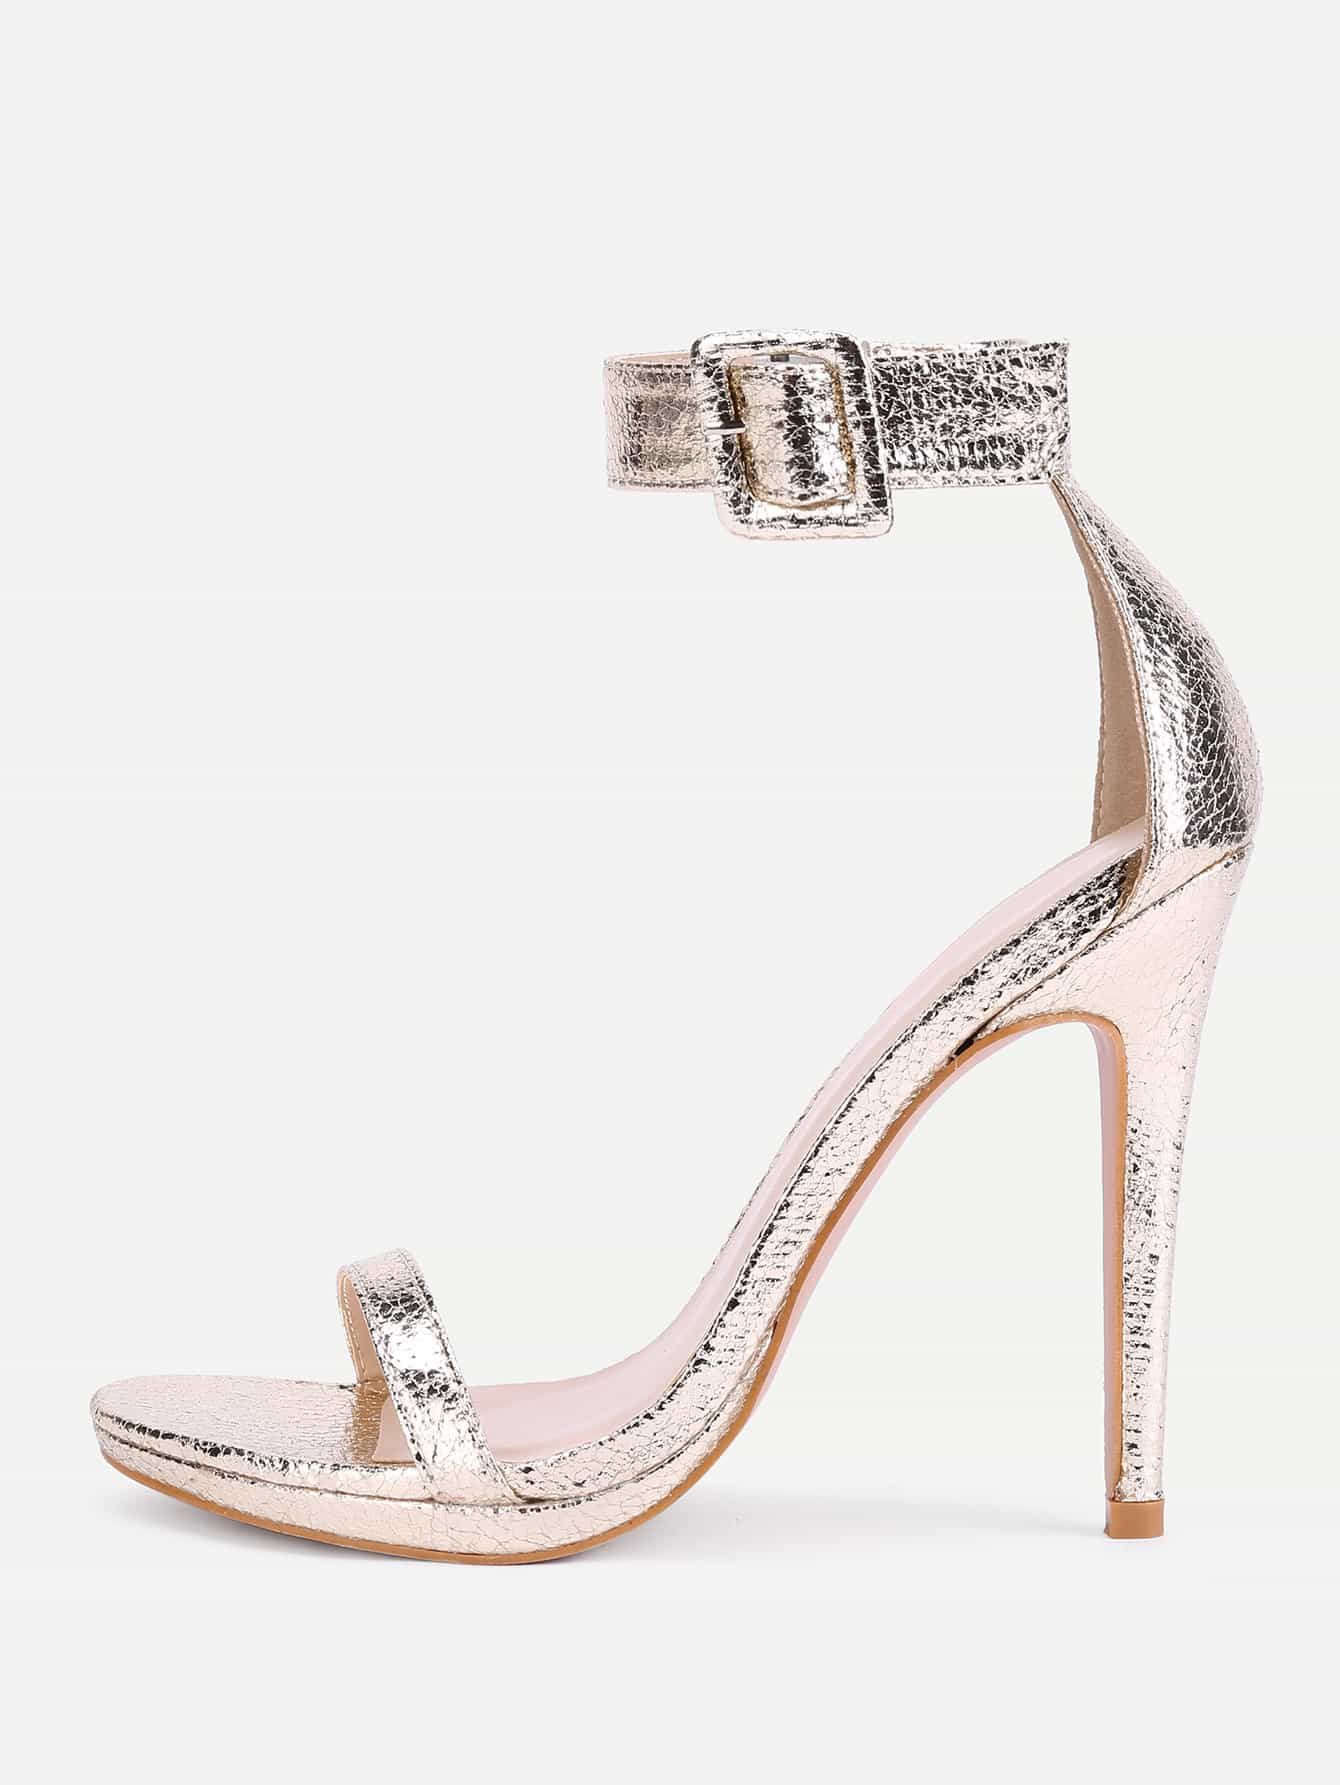 Two Part Ankle Strap Stiletto Sandals shoes171013360